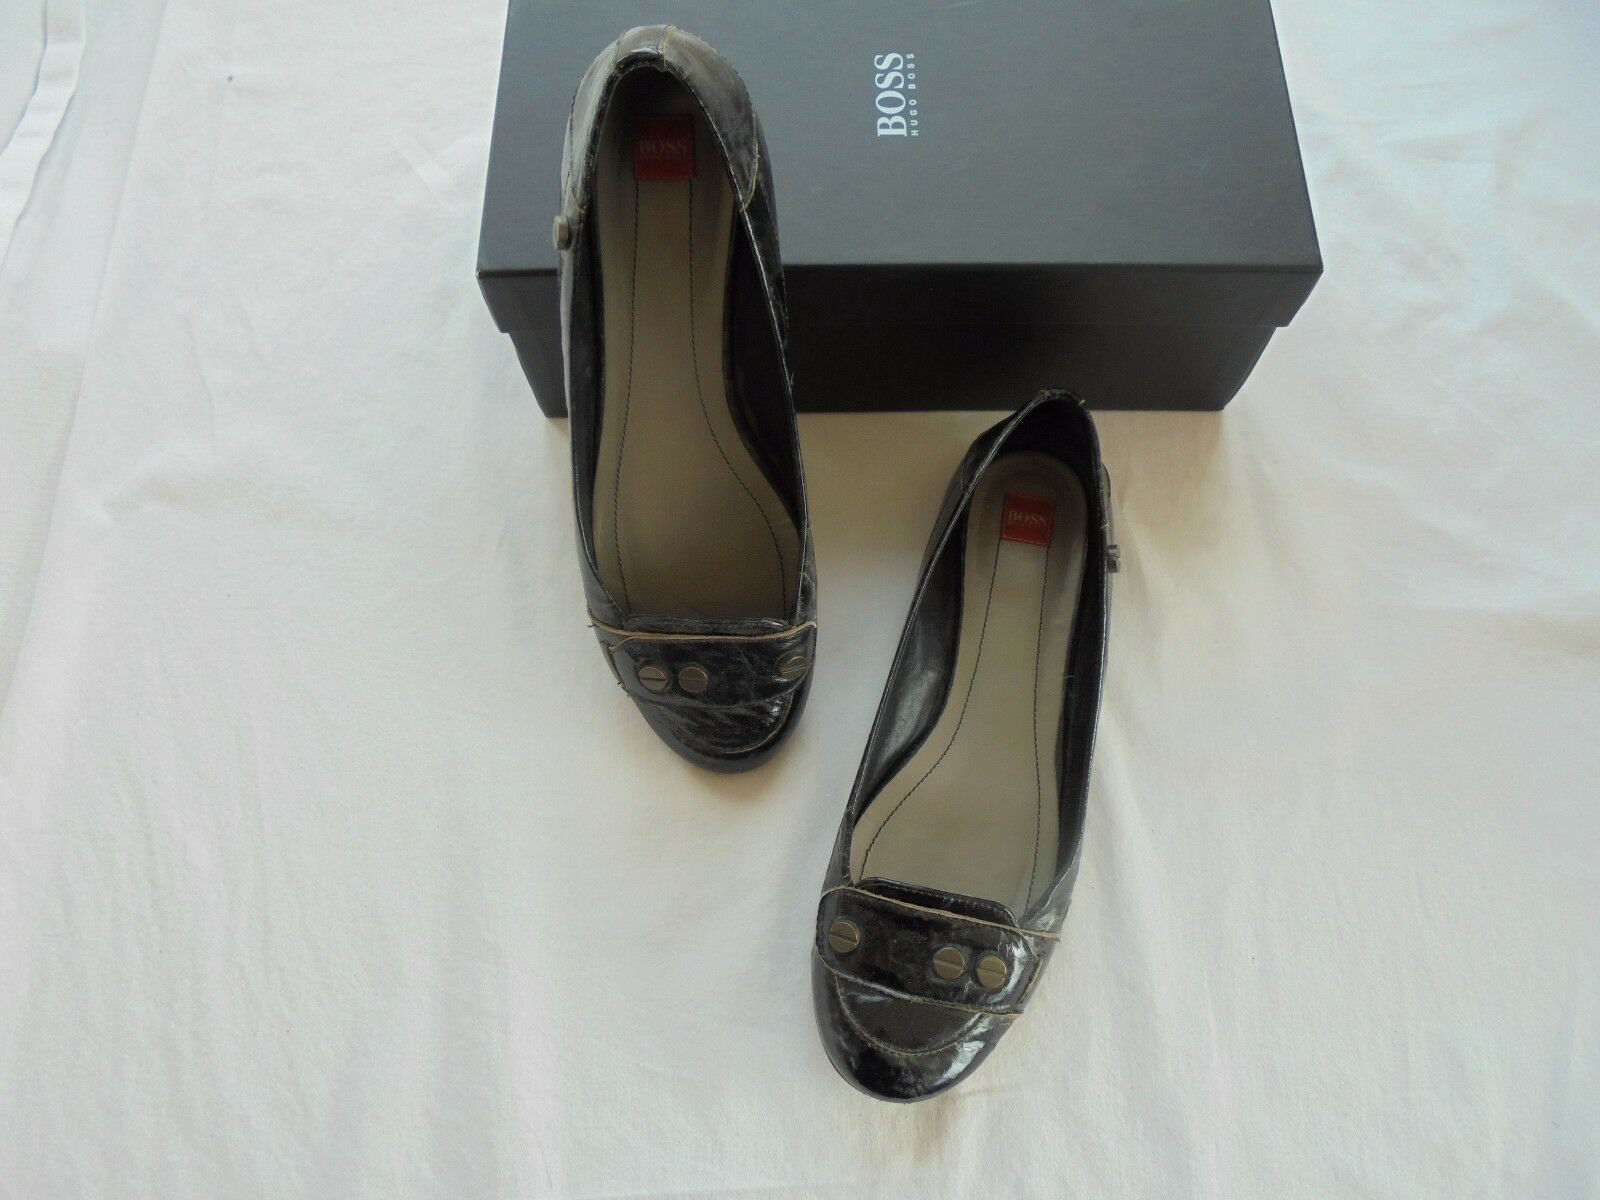 Original Hugo Boss Lackleder Ballerinas Pumps NP:  Designer Schuhe Pumps Ballerinas Gr. 38 309699